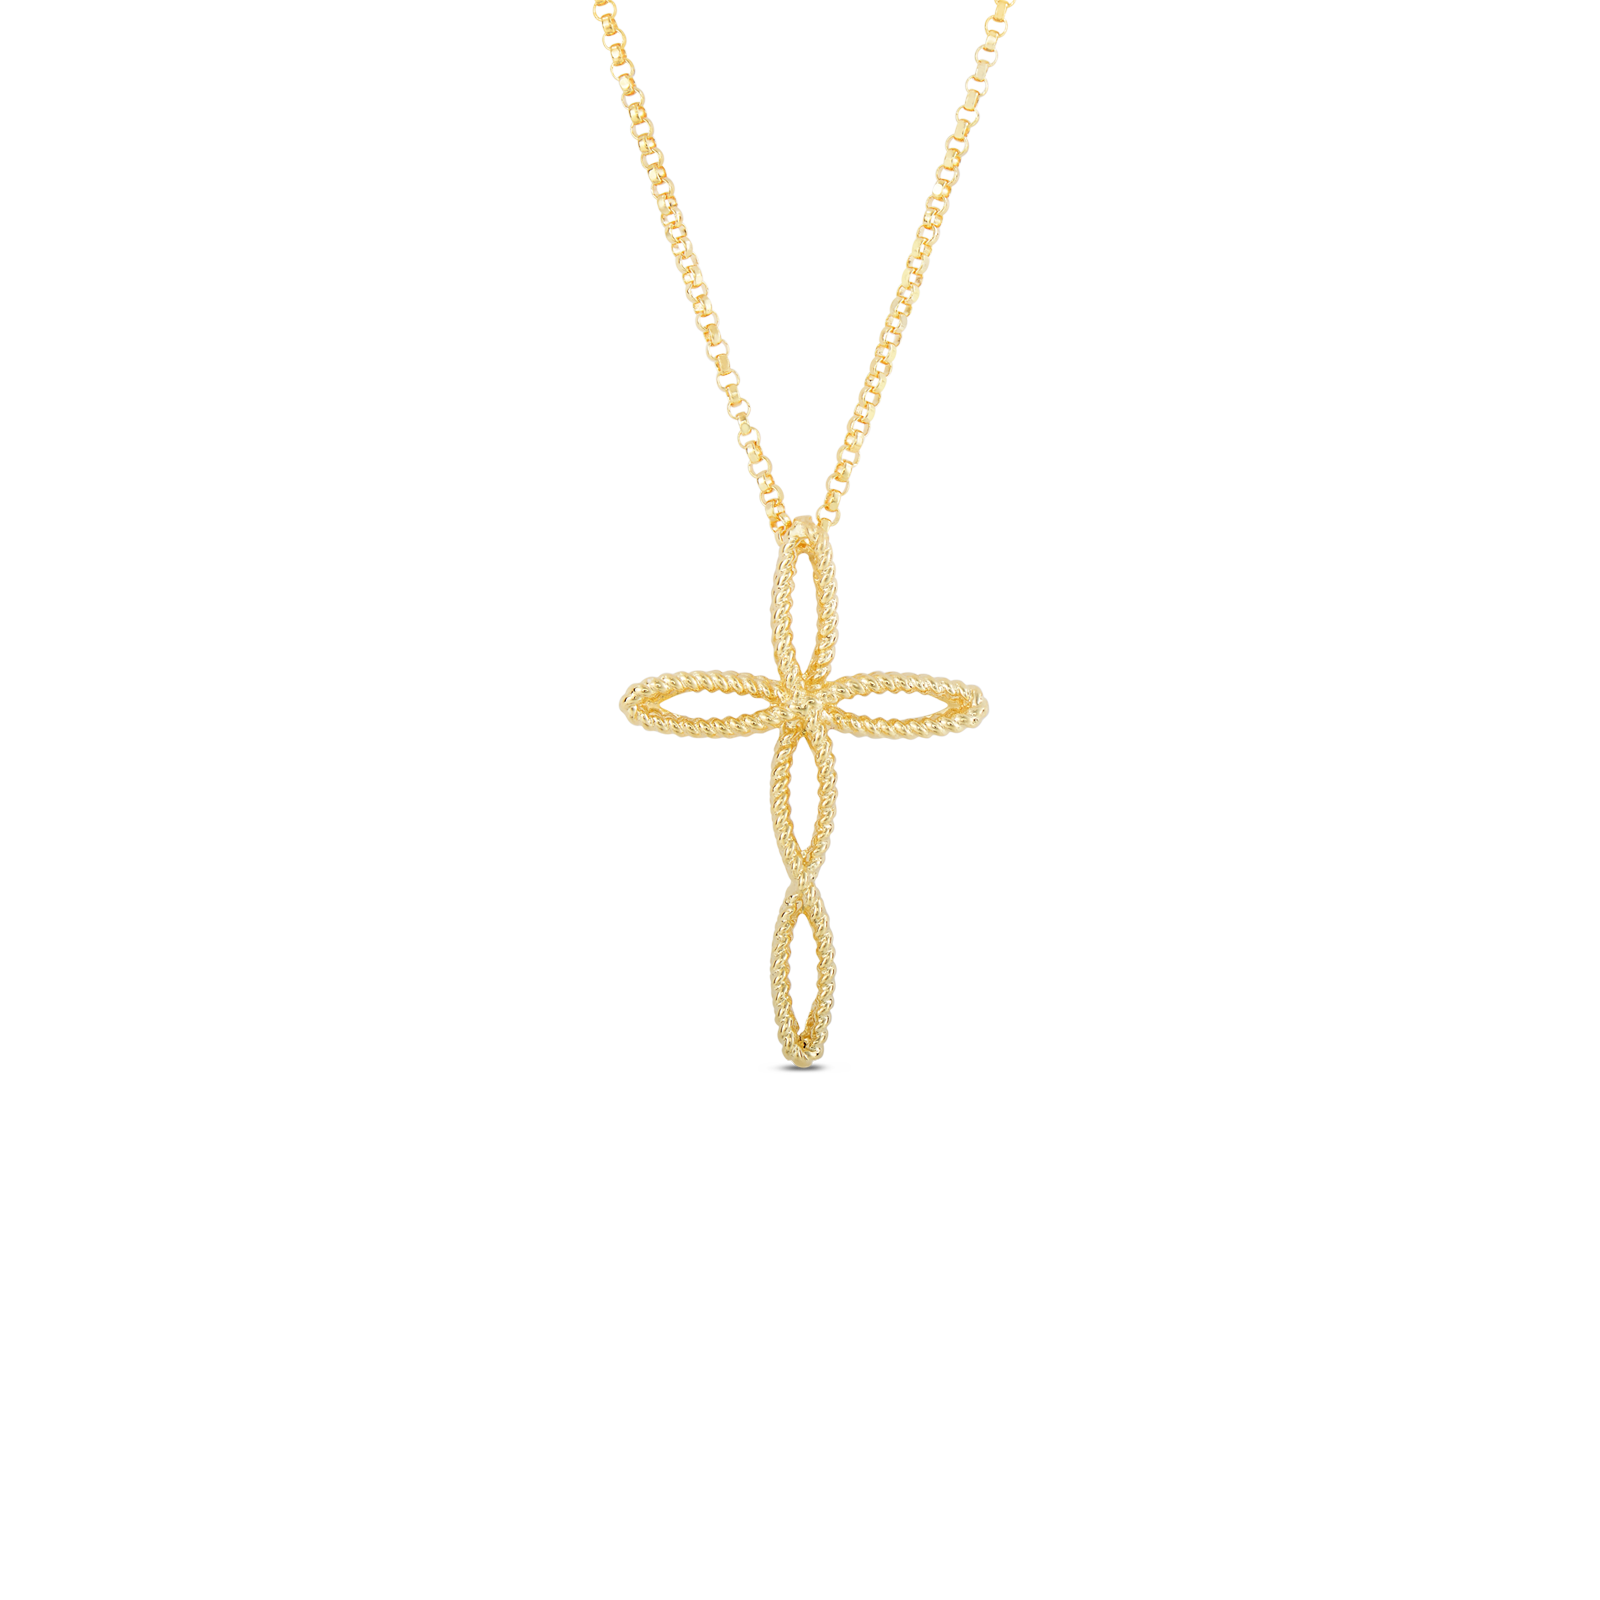 uploads necklace necklace PNG70 4